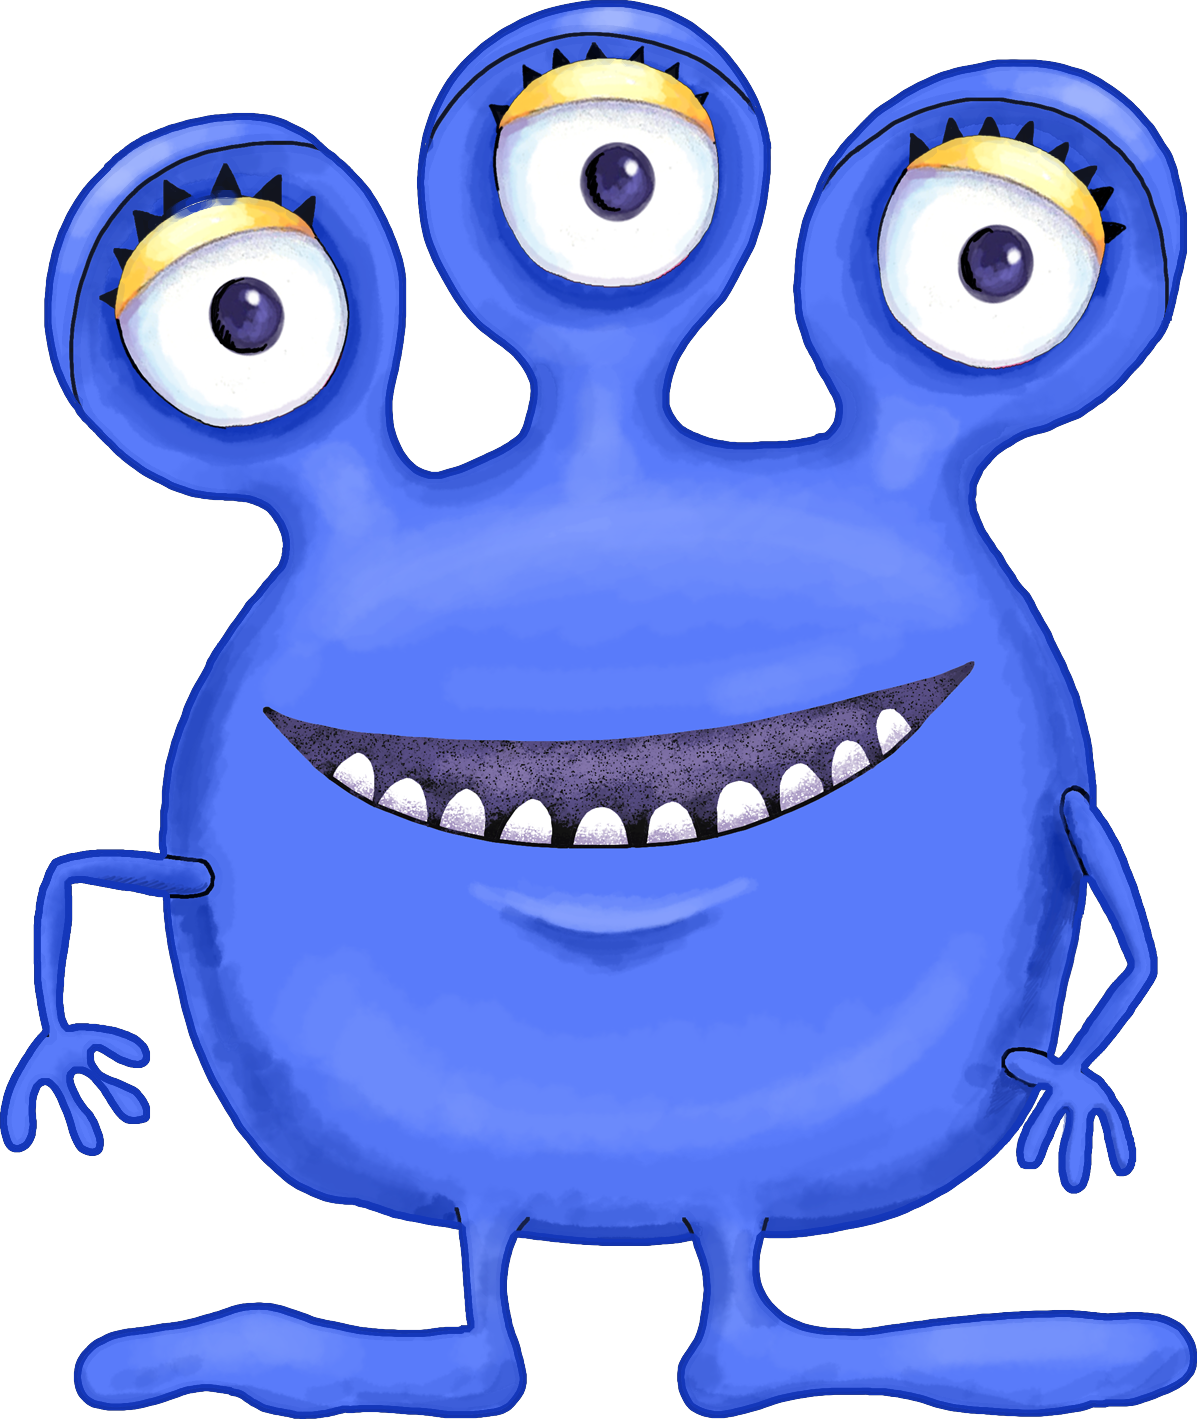 Cute Blue Purple And Green Cartoon Alien Monsters